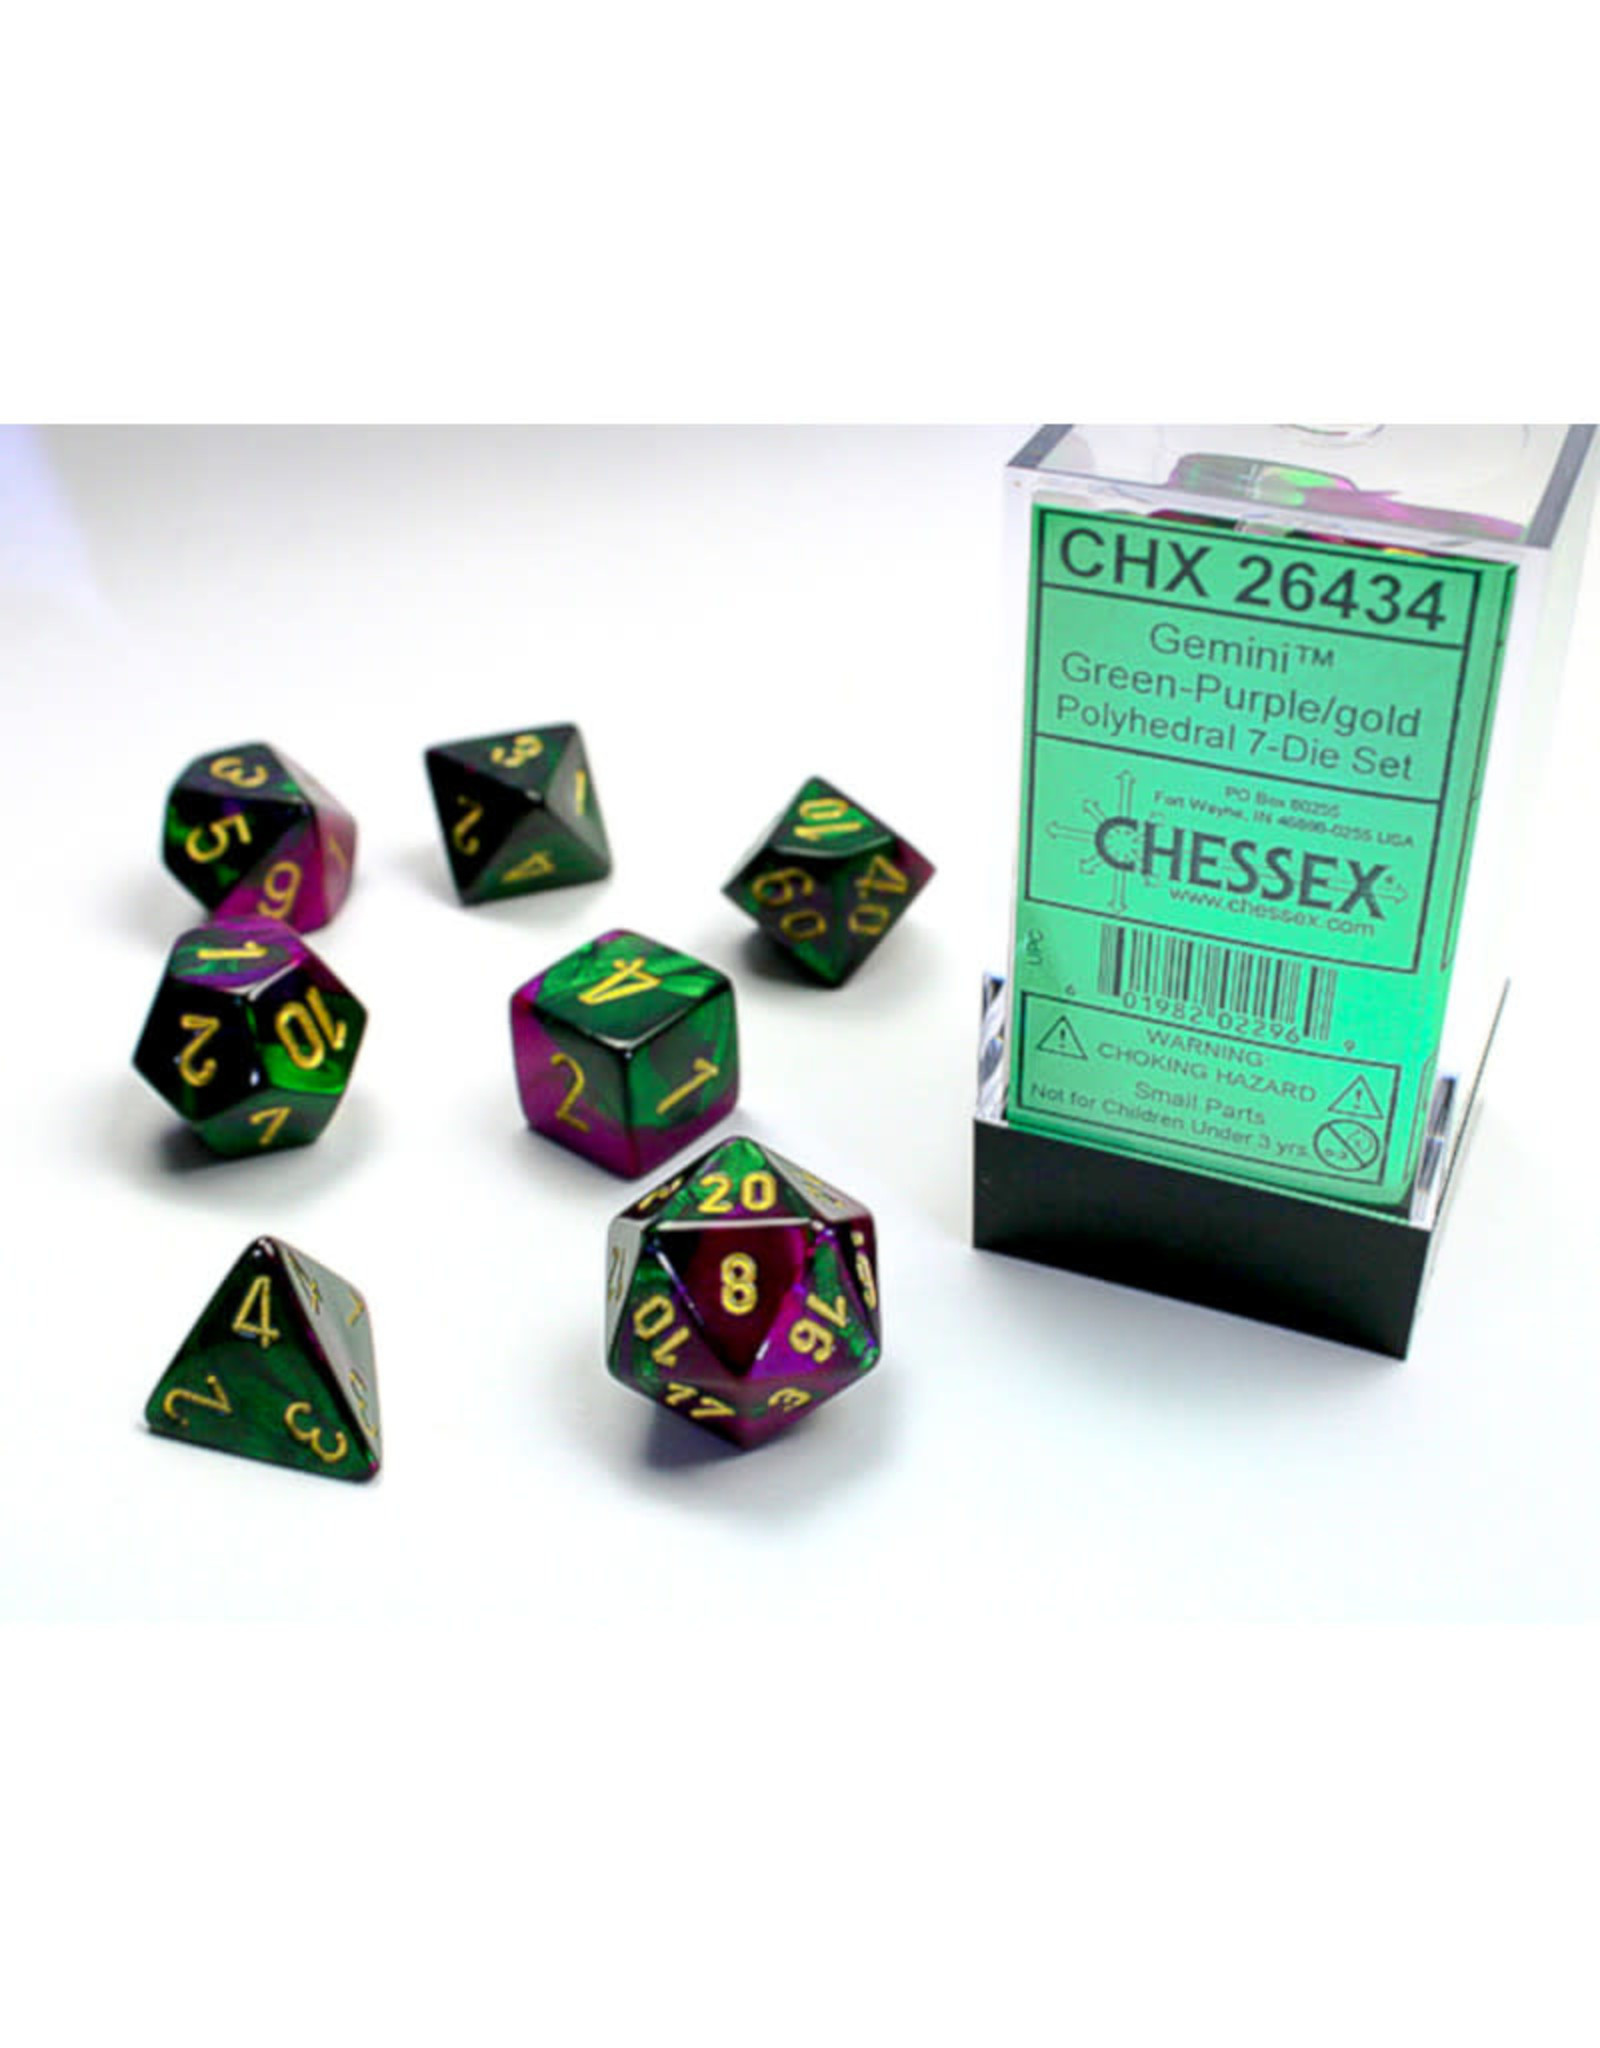 Chessex Polyhedral Dice Set: Gemini Green Purple/Gold (7)